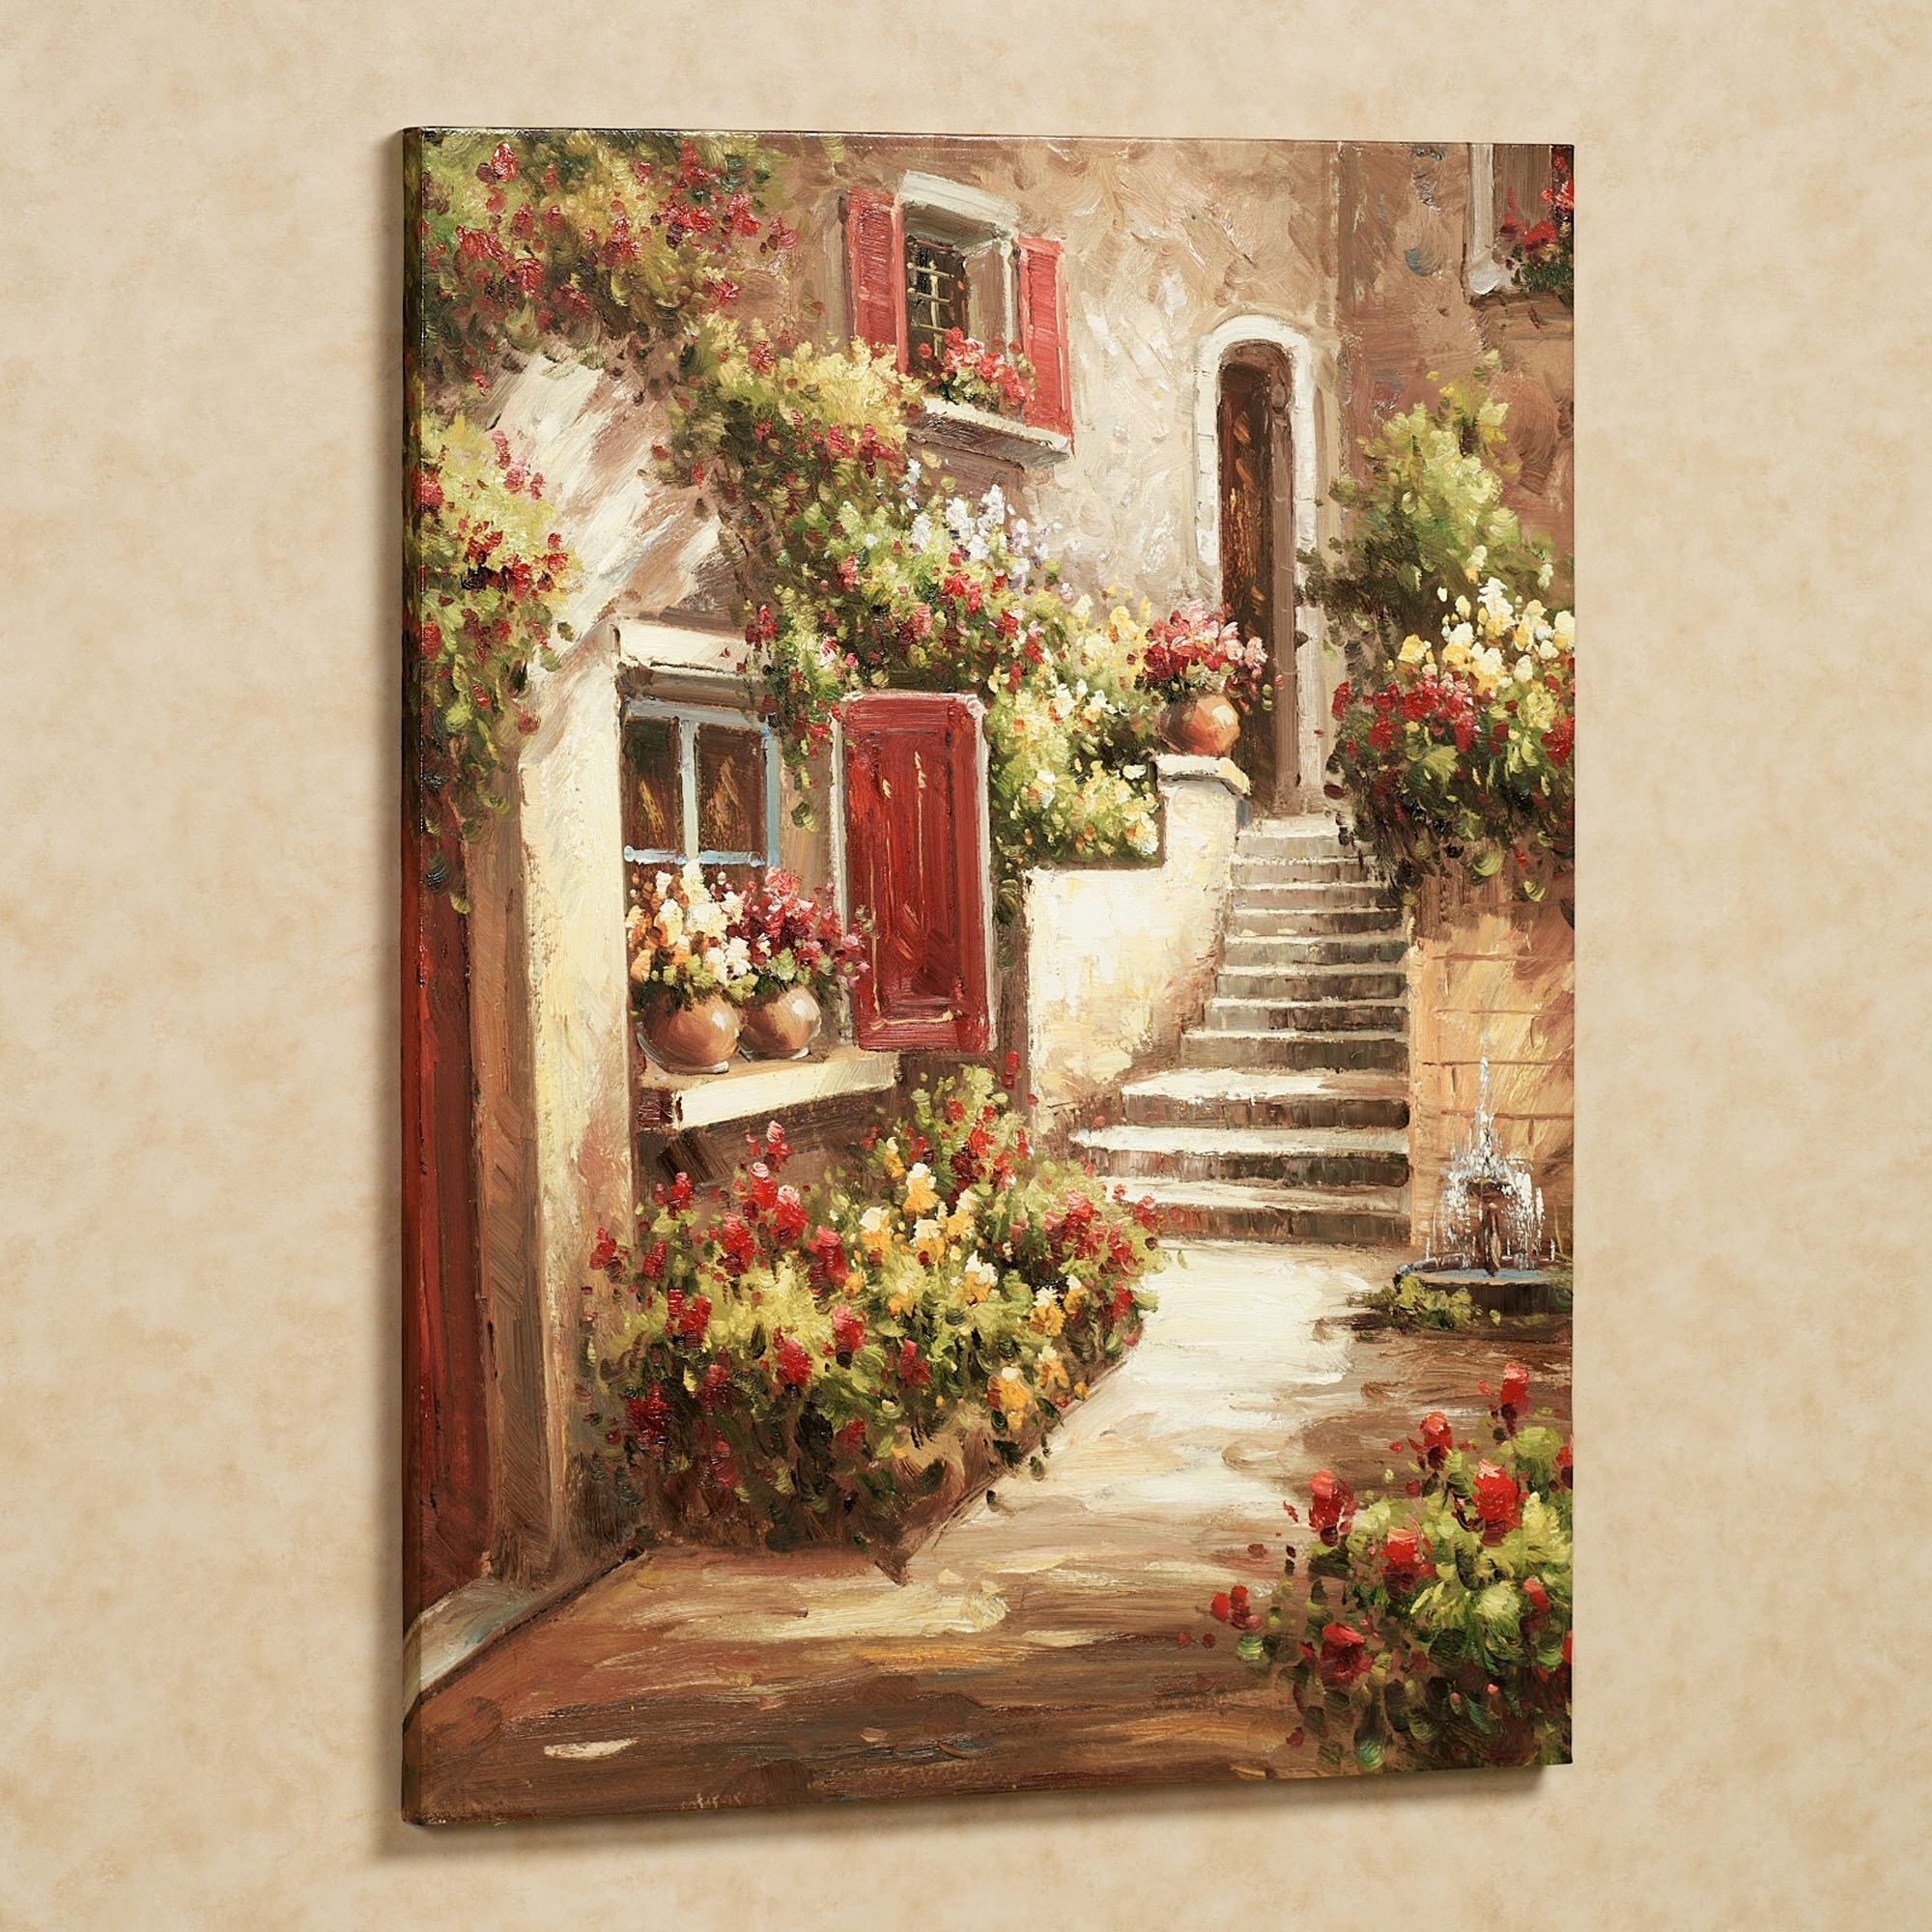 Canvas Wall Art | Touch Of Class Regarding Most Current Mountains Canvas Wall Art (Gallery 9 of 15)